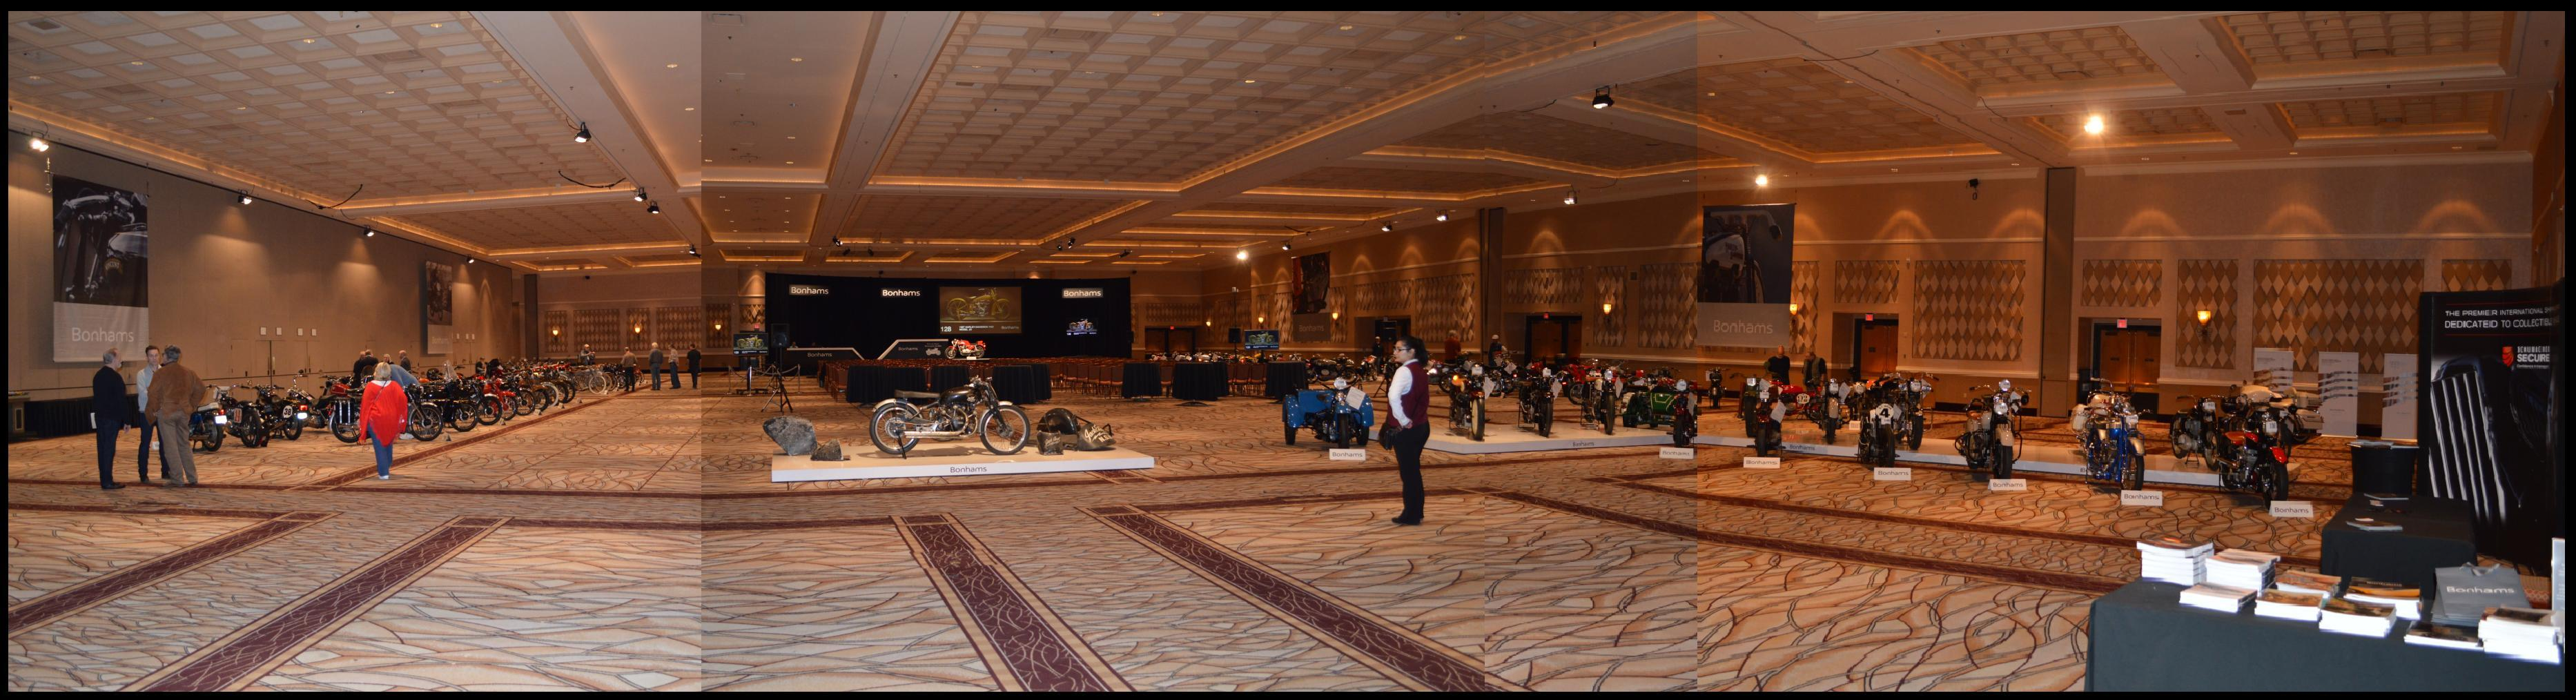 Bonham auction in the Amazon Ballroom at the Rio All Suite Hotel and Casino, photograph by Russell Holder